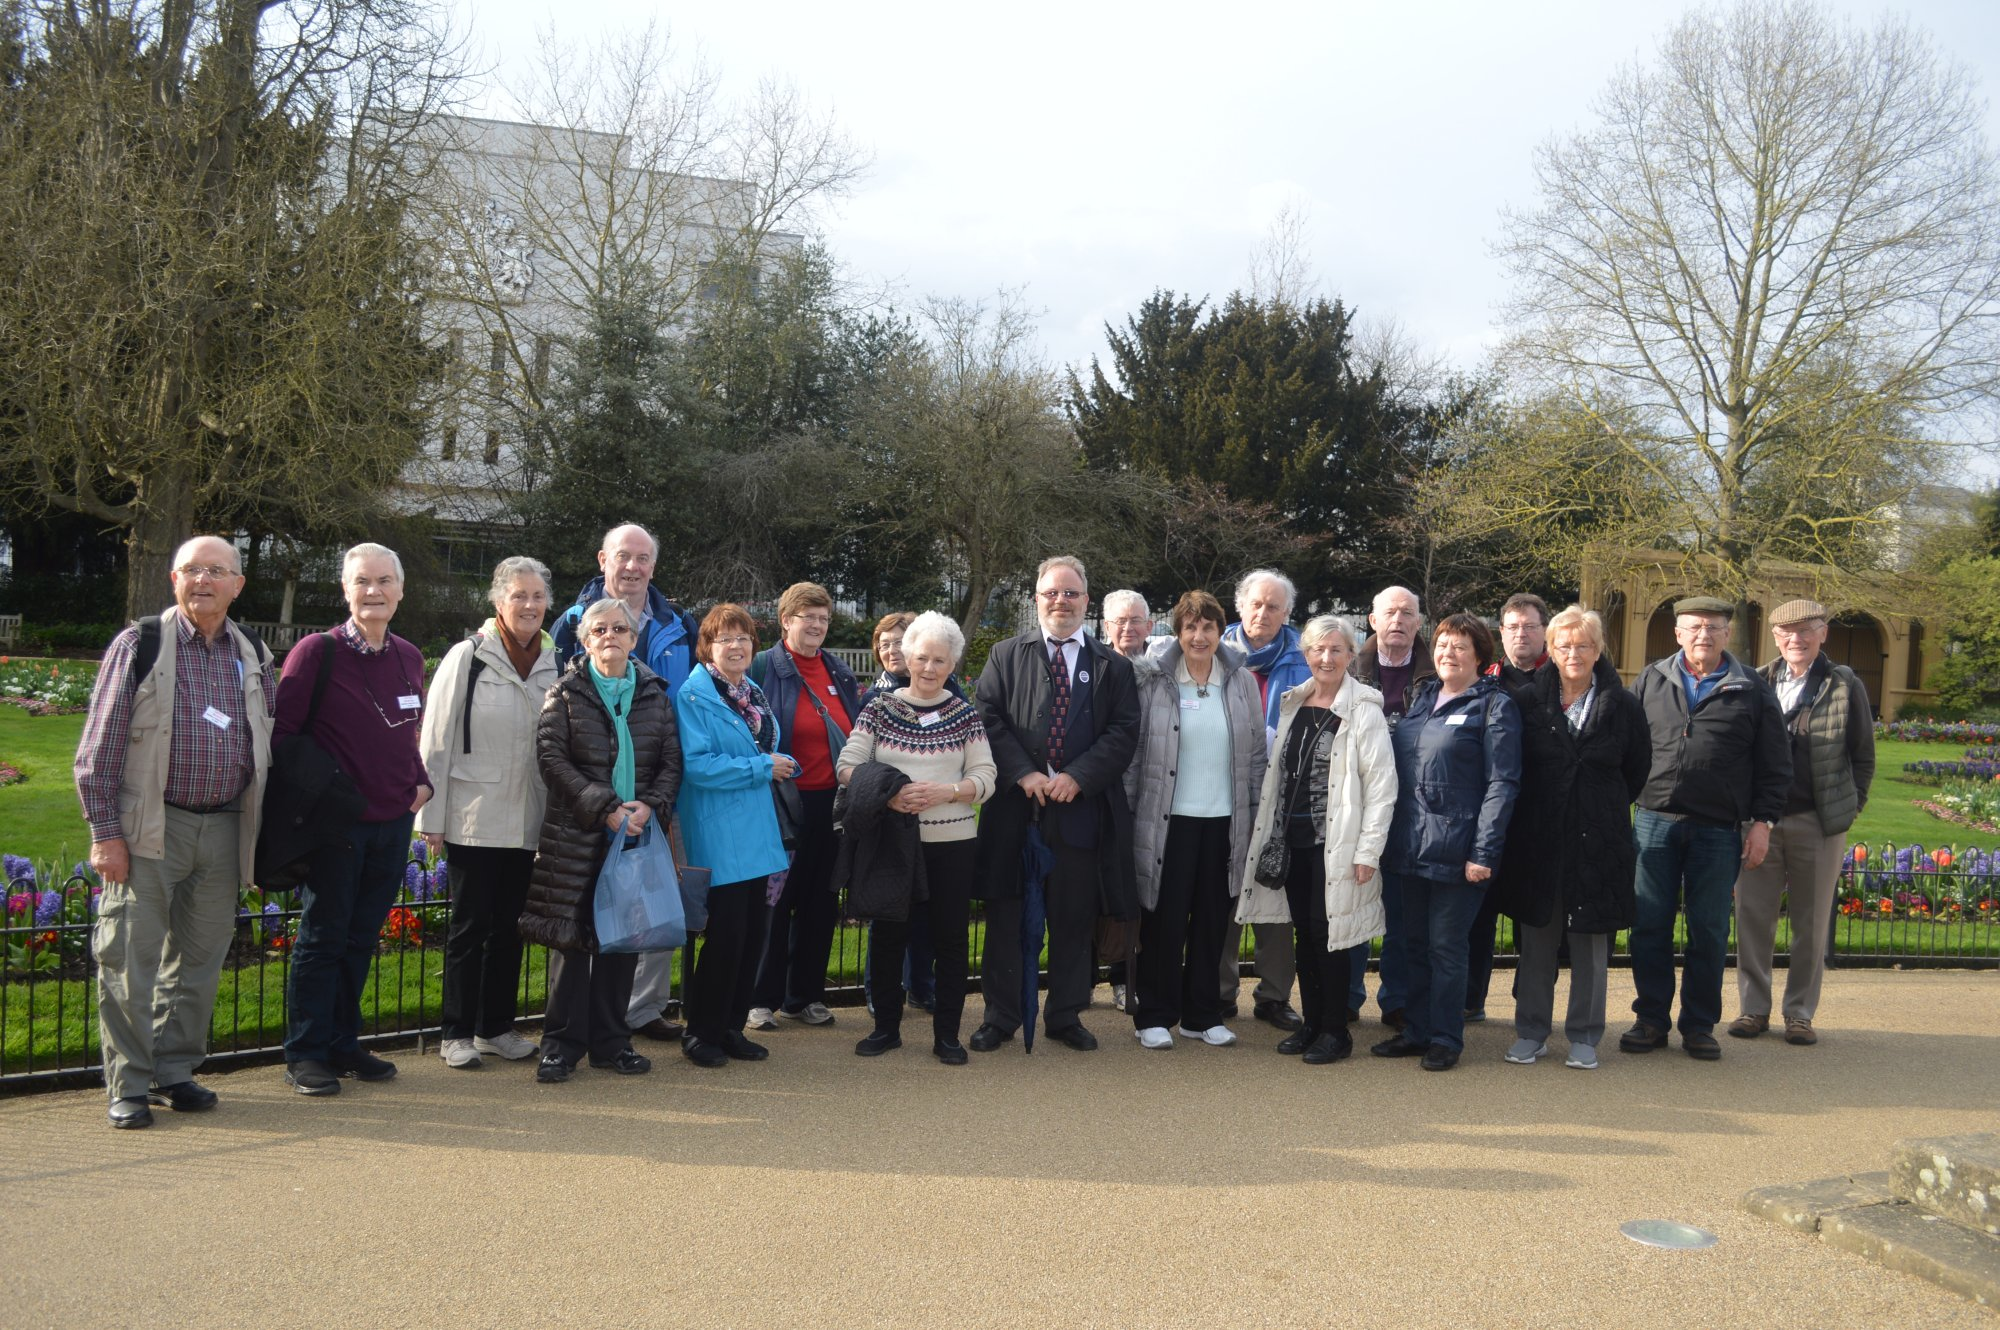 Group on walking tour of Leamington